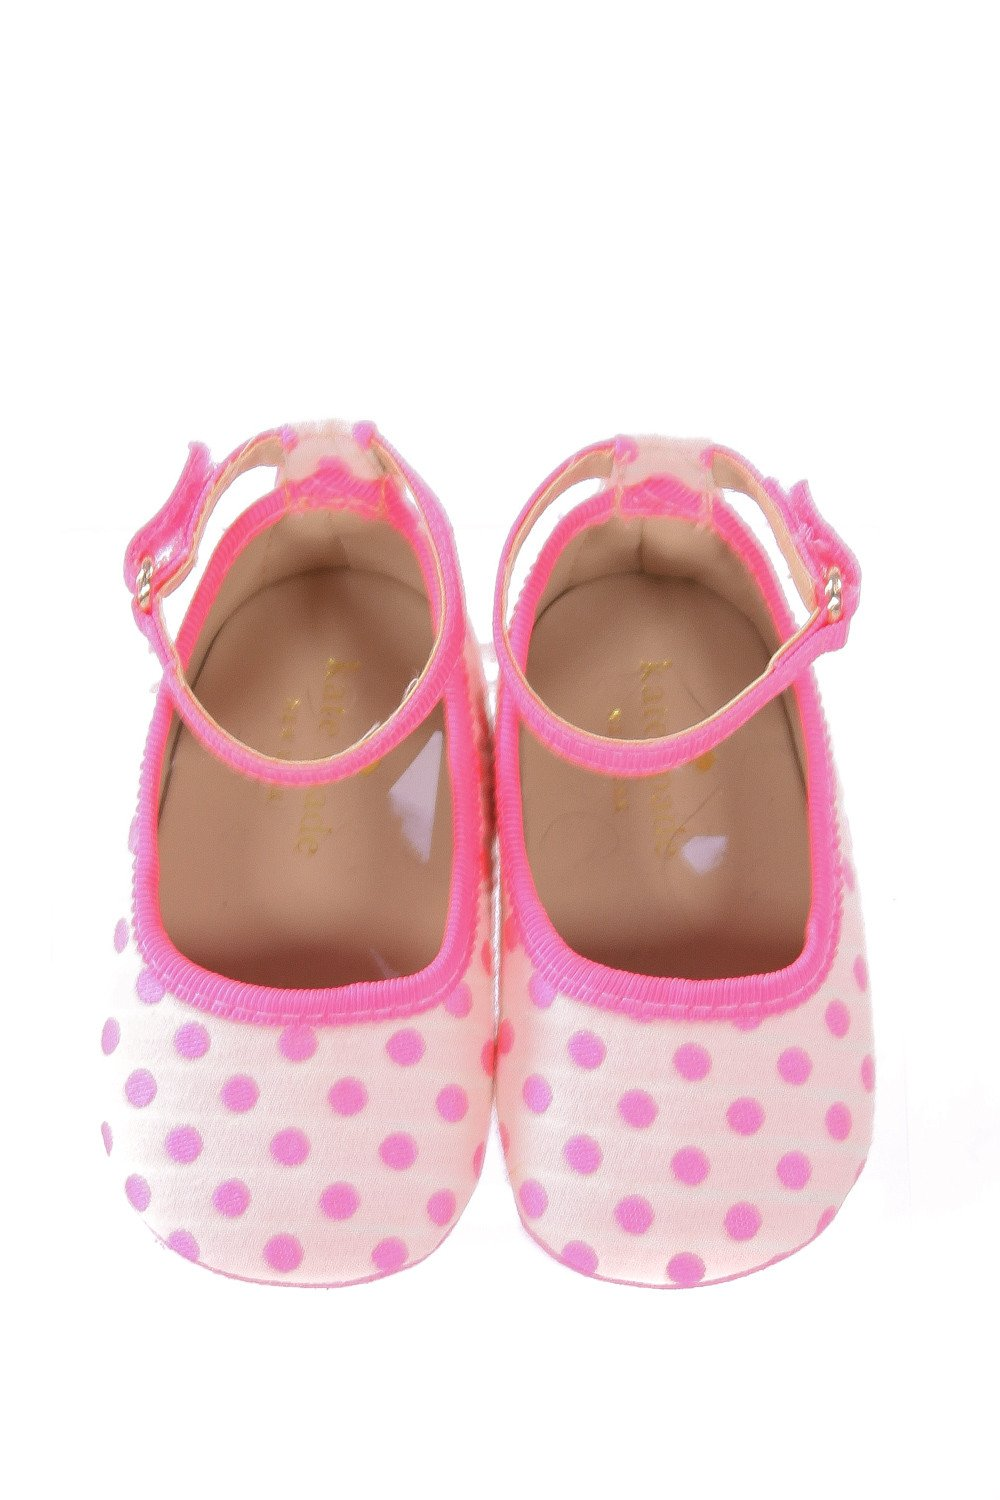 KATE SPADE PINK POLKA DOT SHOES *SIZE INFANT 3, EUC